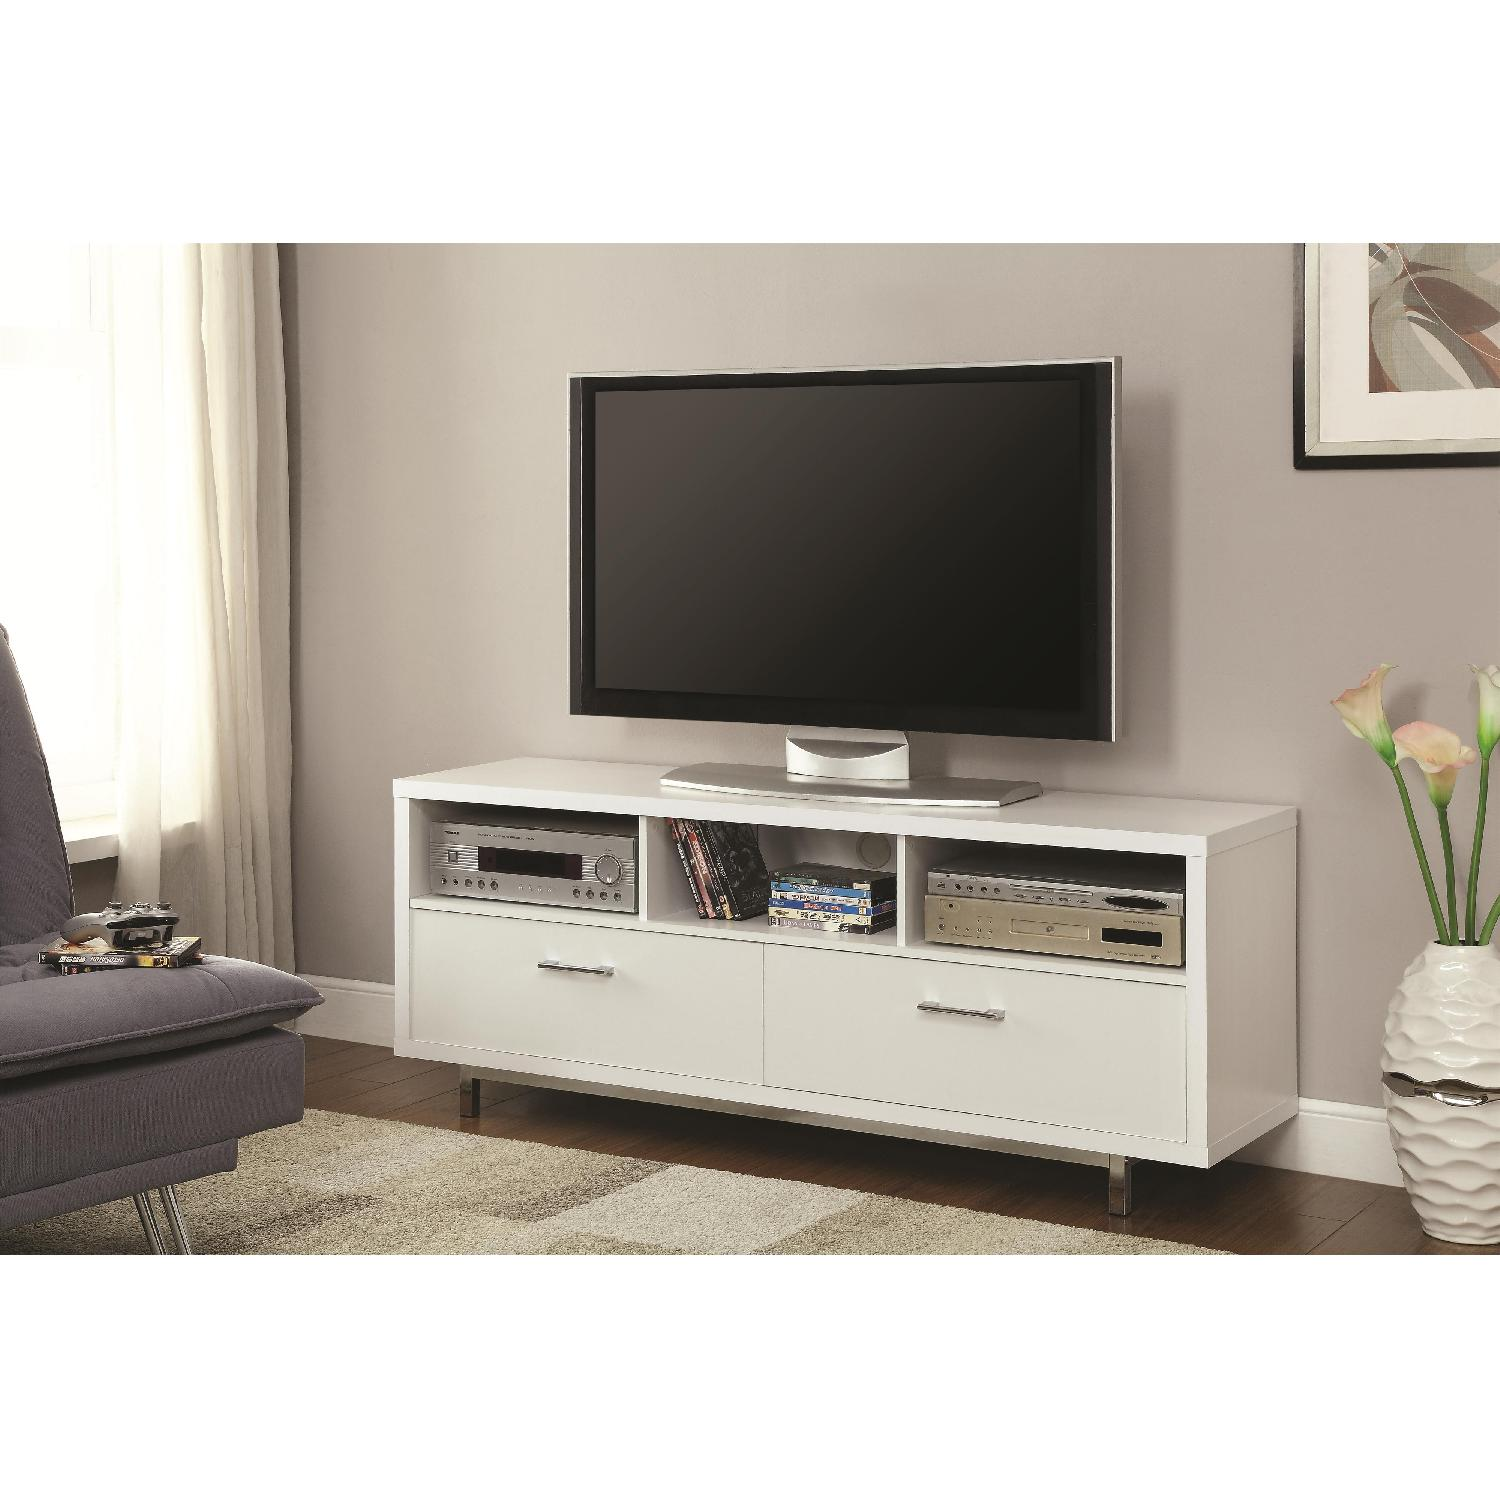 Modern TV Stand With 3 Media Shelves & 2 Utility Drawers w/ Silver Hardware in Matte White Finish - image-1